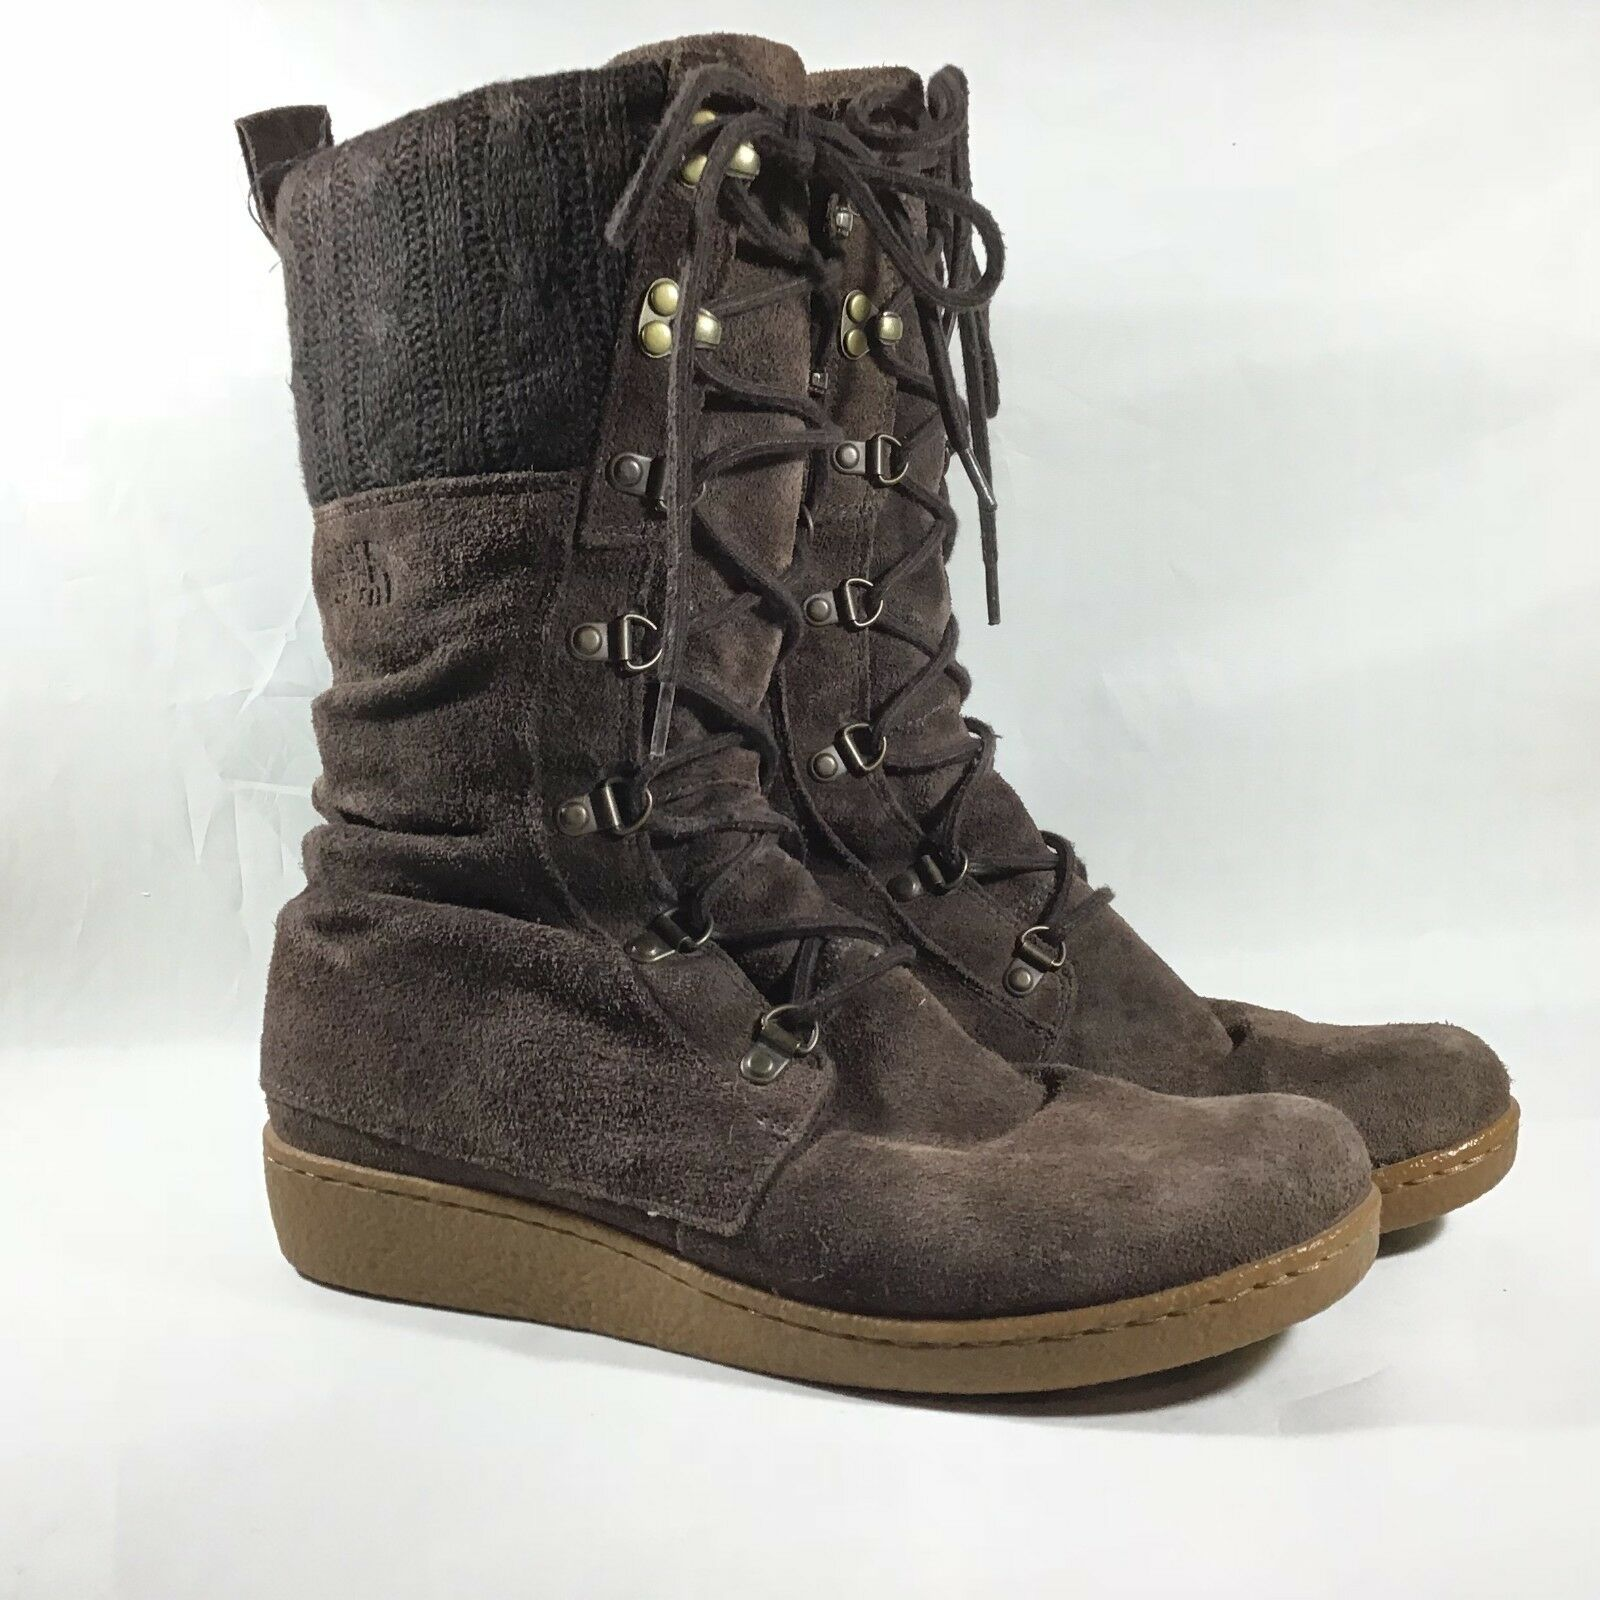 The North Face Alycia Boots Insulated 200 gm Primaloft Brown Size 8.5